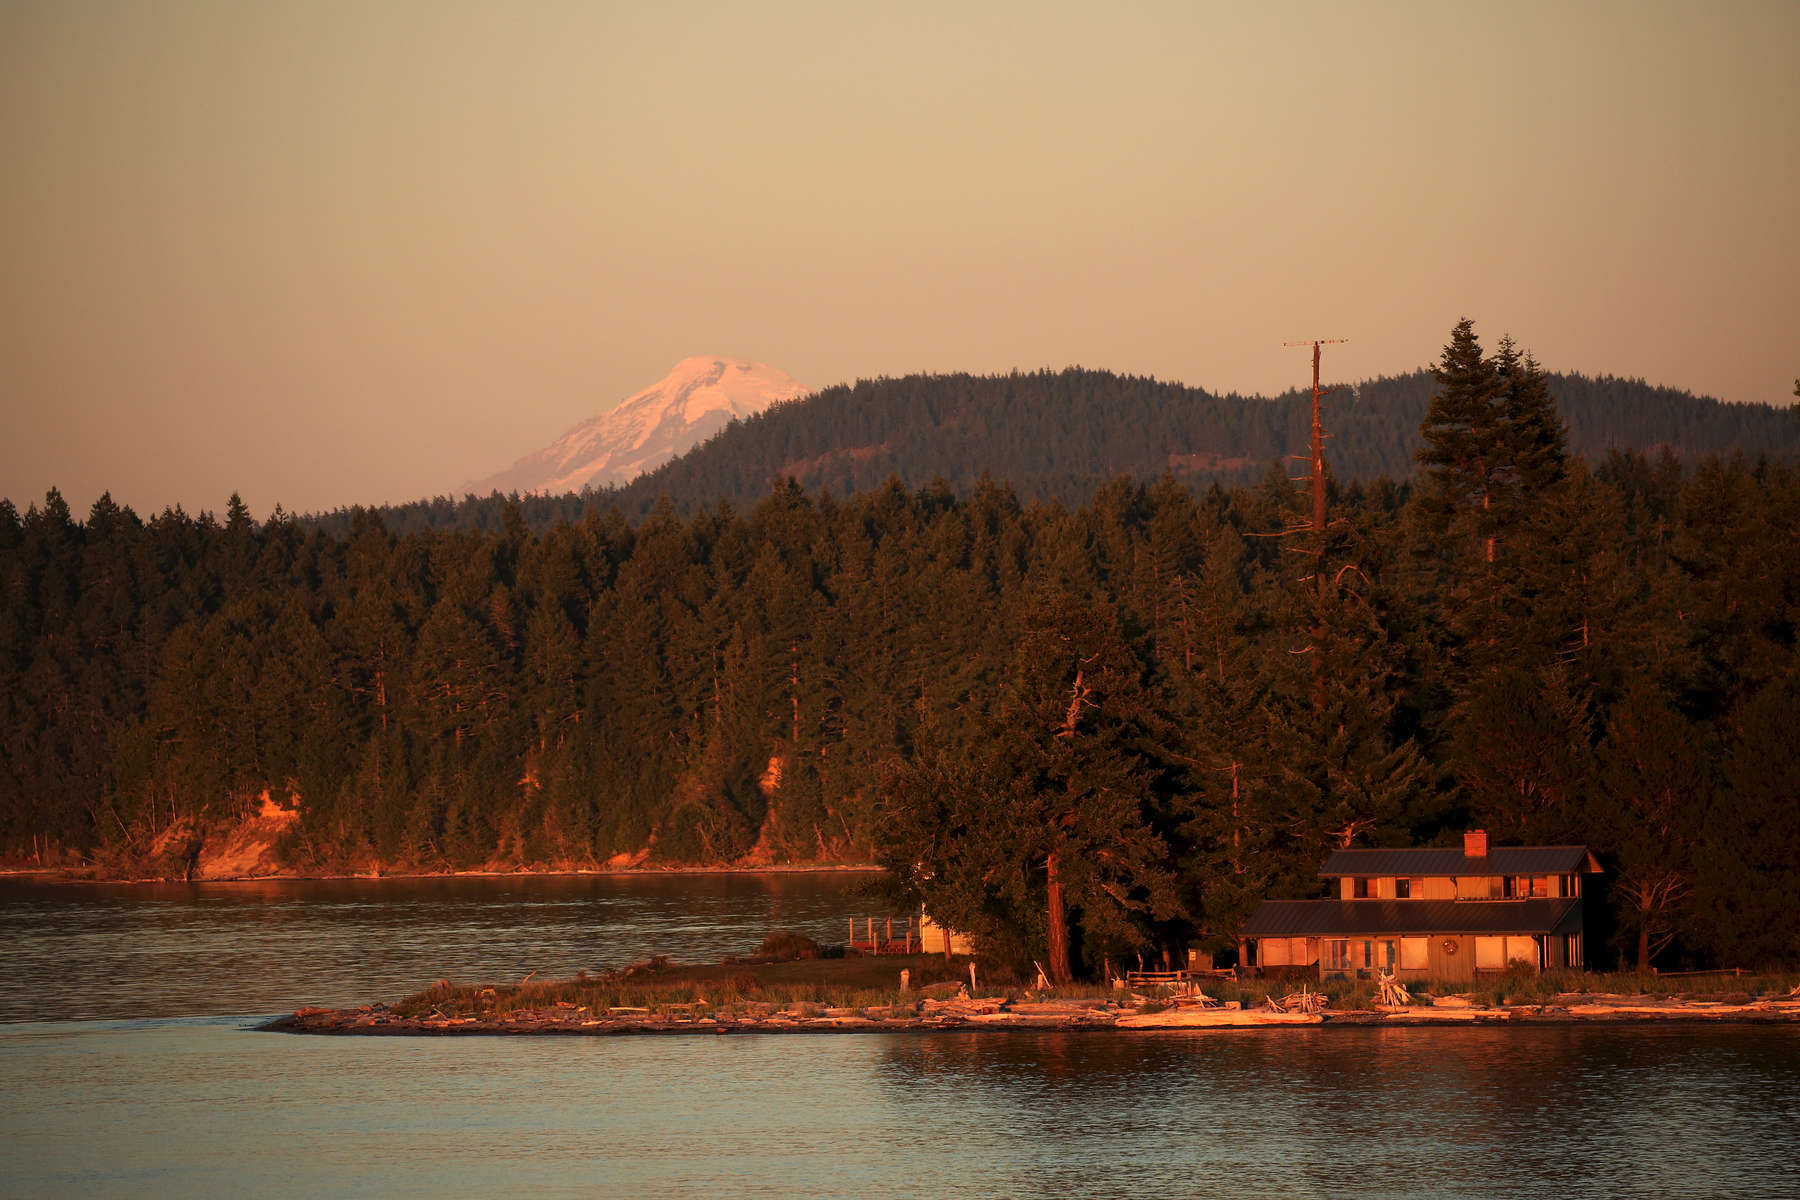 The setting sun illuminates a house on the ferry ride from Friday Harbor to Anacortes.